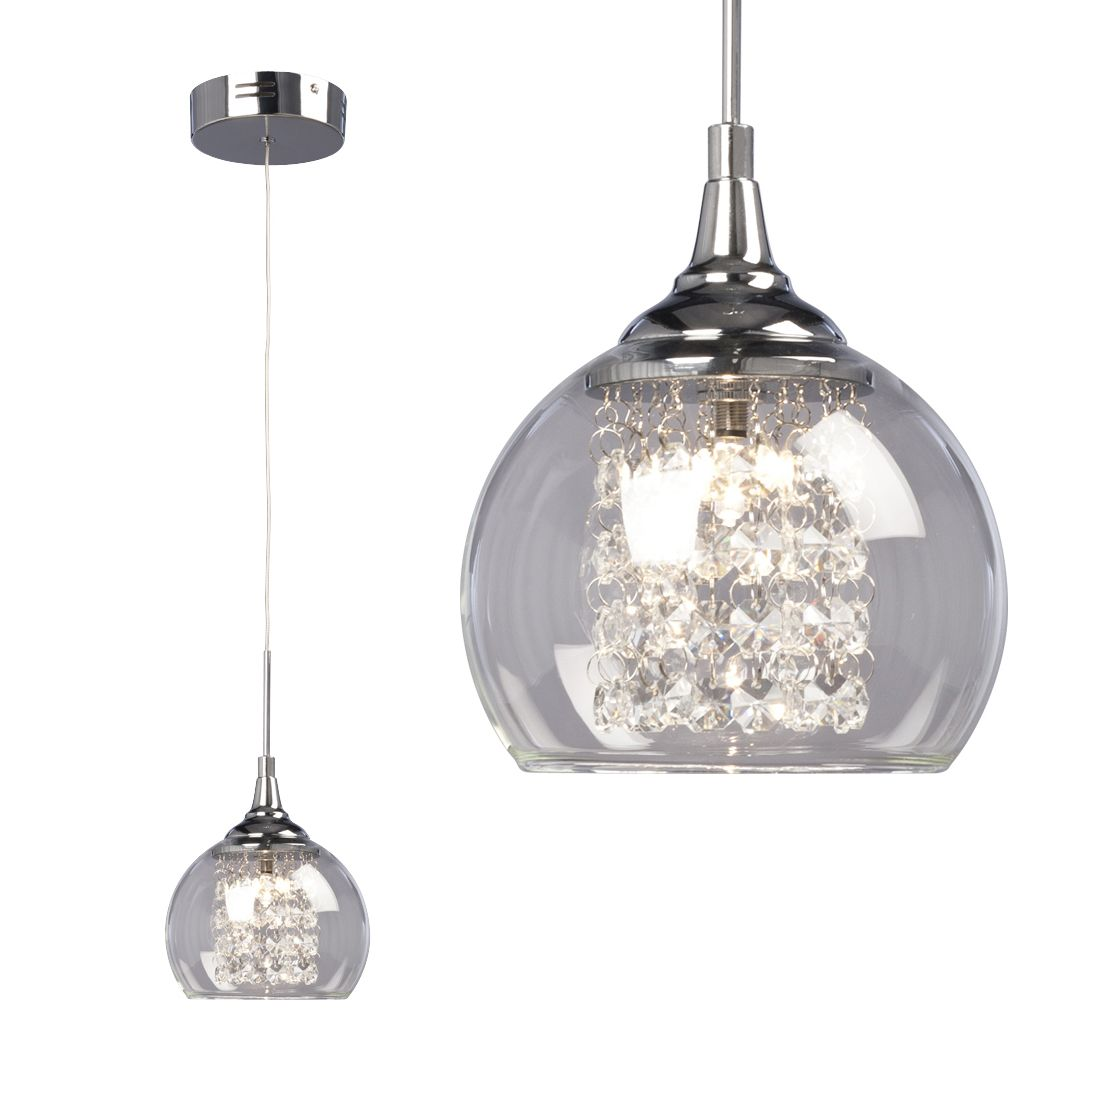 Shop galaxy lighting 916091ch rihanna mini pendant at lowes canada shop galaxy lighting 916091ch rihanna mini pendant at lowes canada find our selection of mini arubaitofo Choice Image